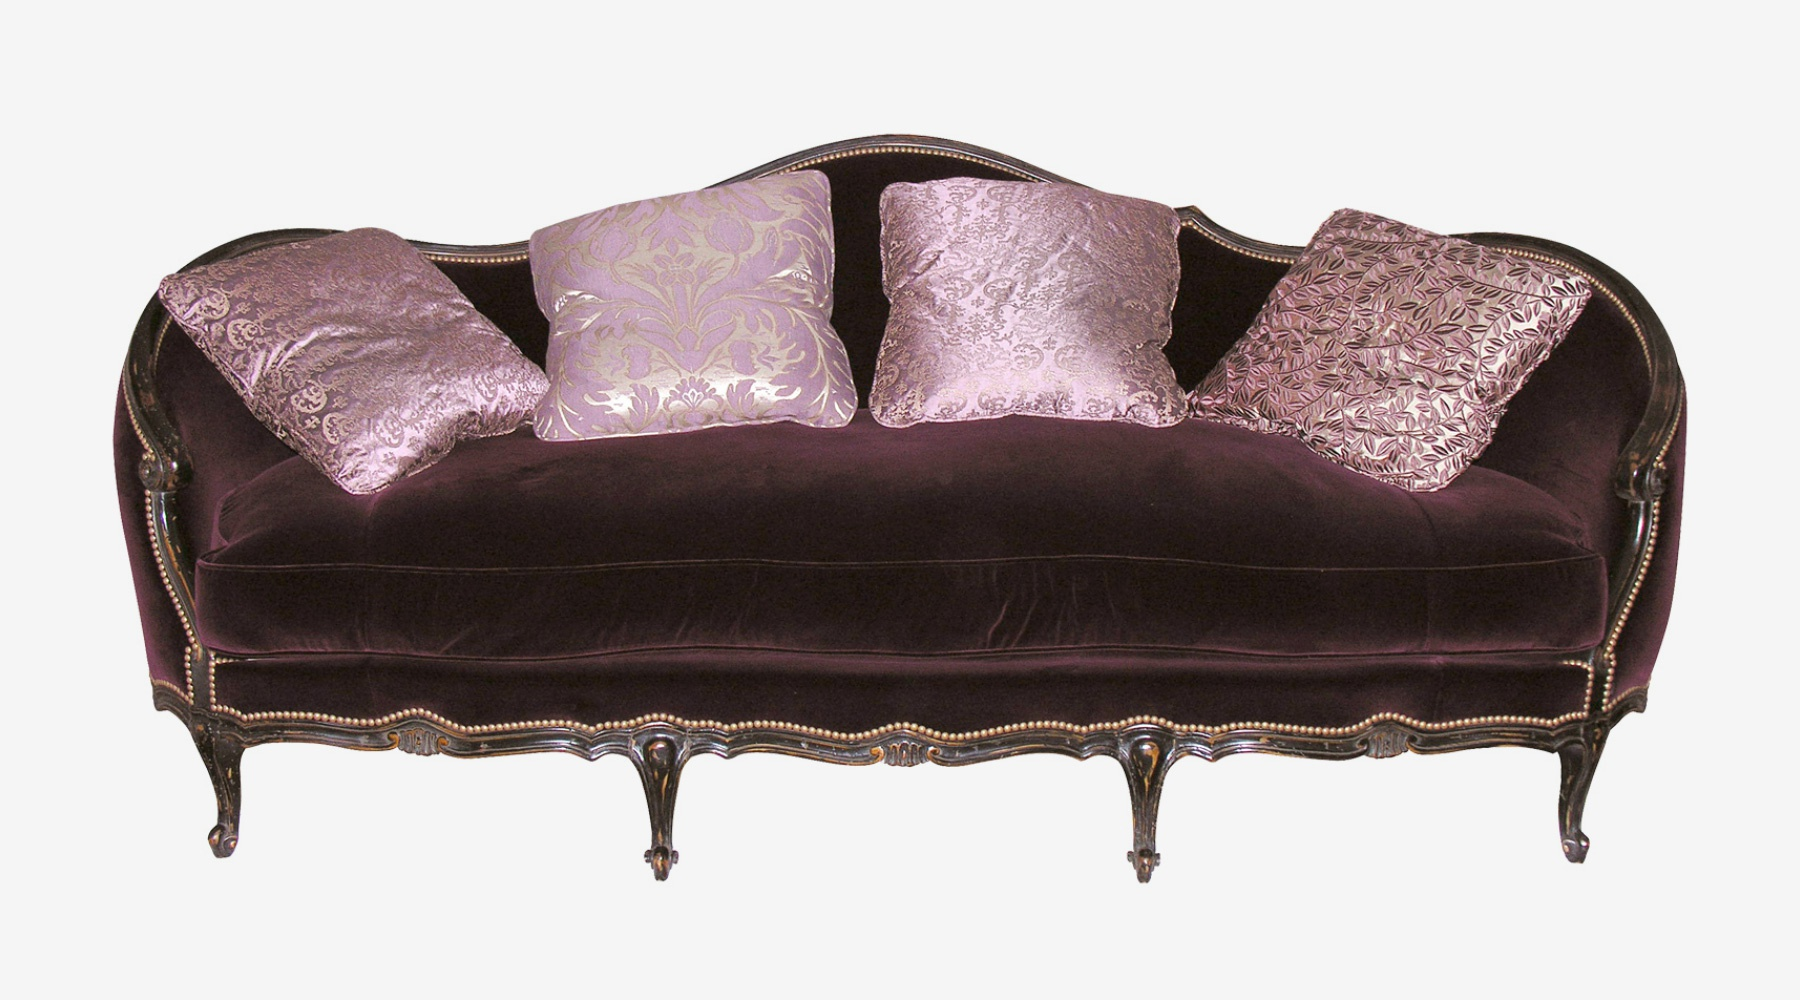 Sofa With Beech Frame And Fabric Upholstery D Description